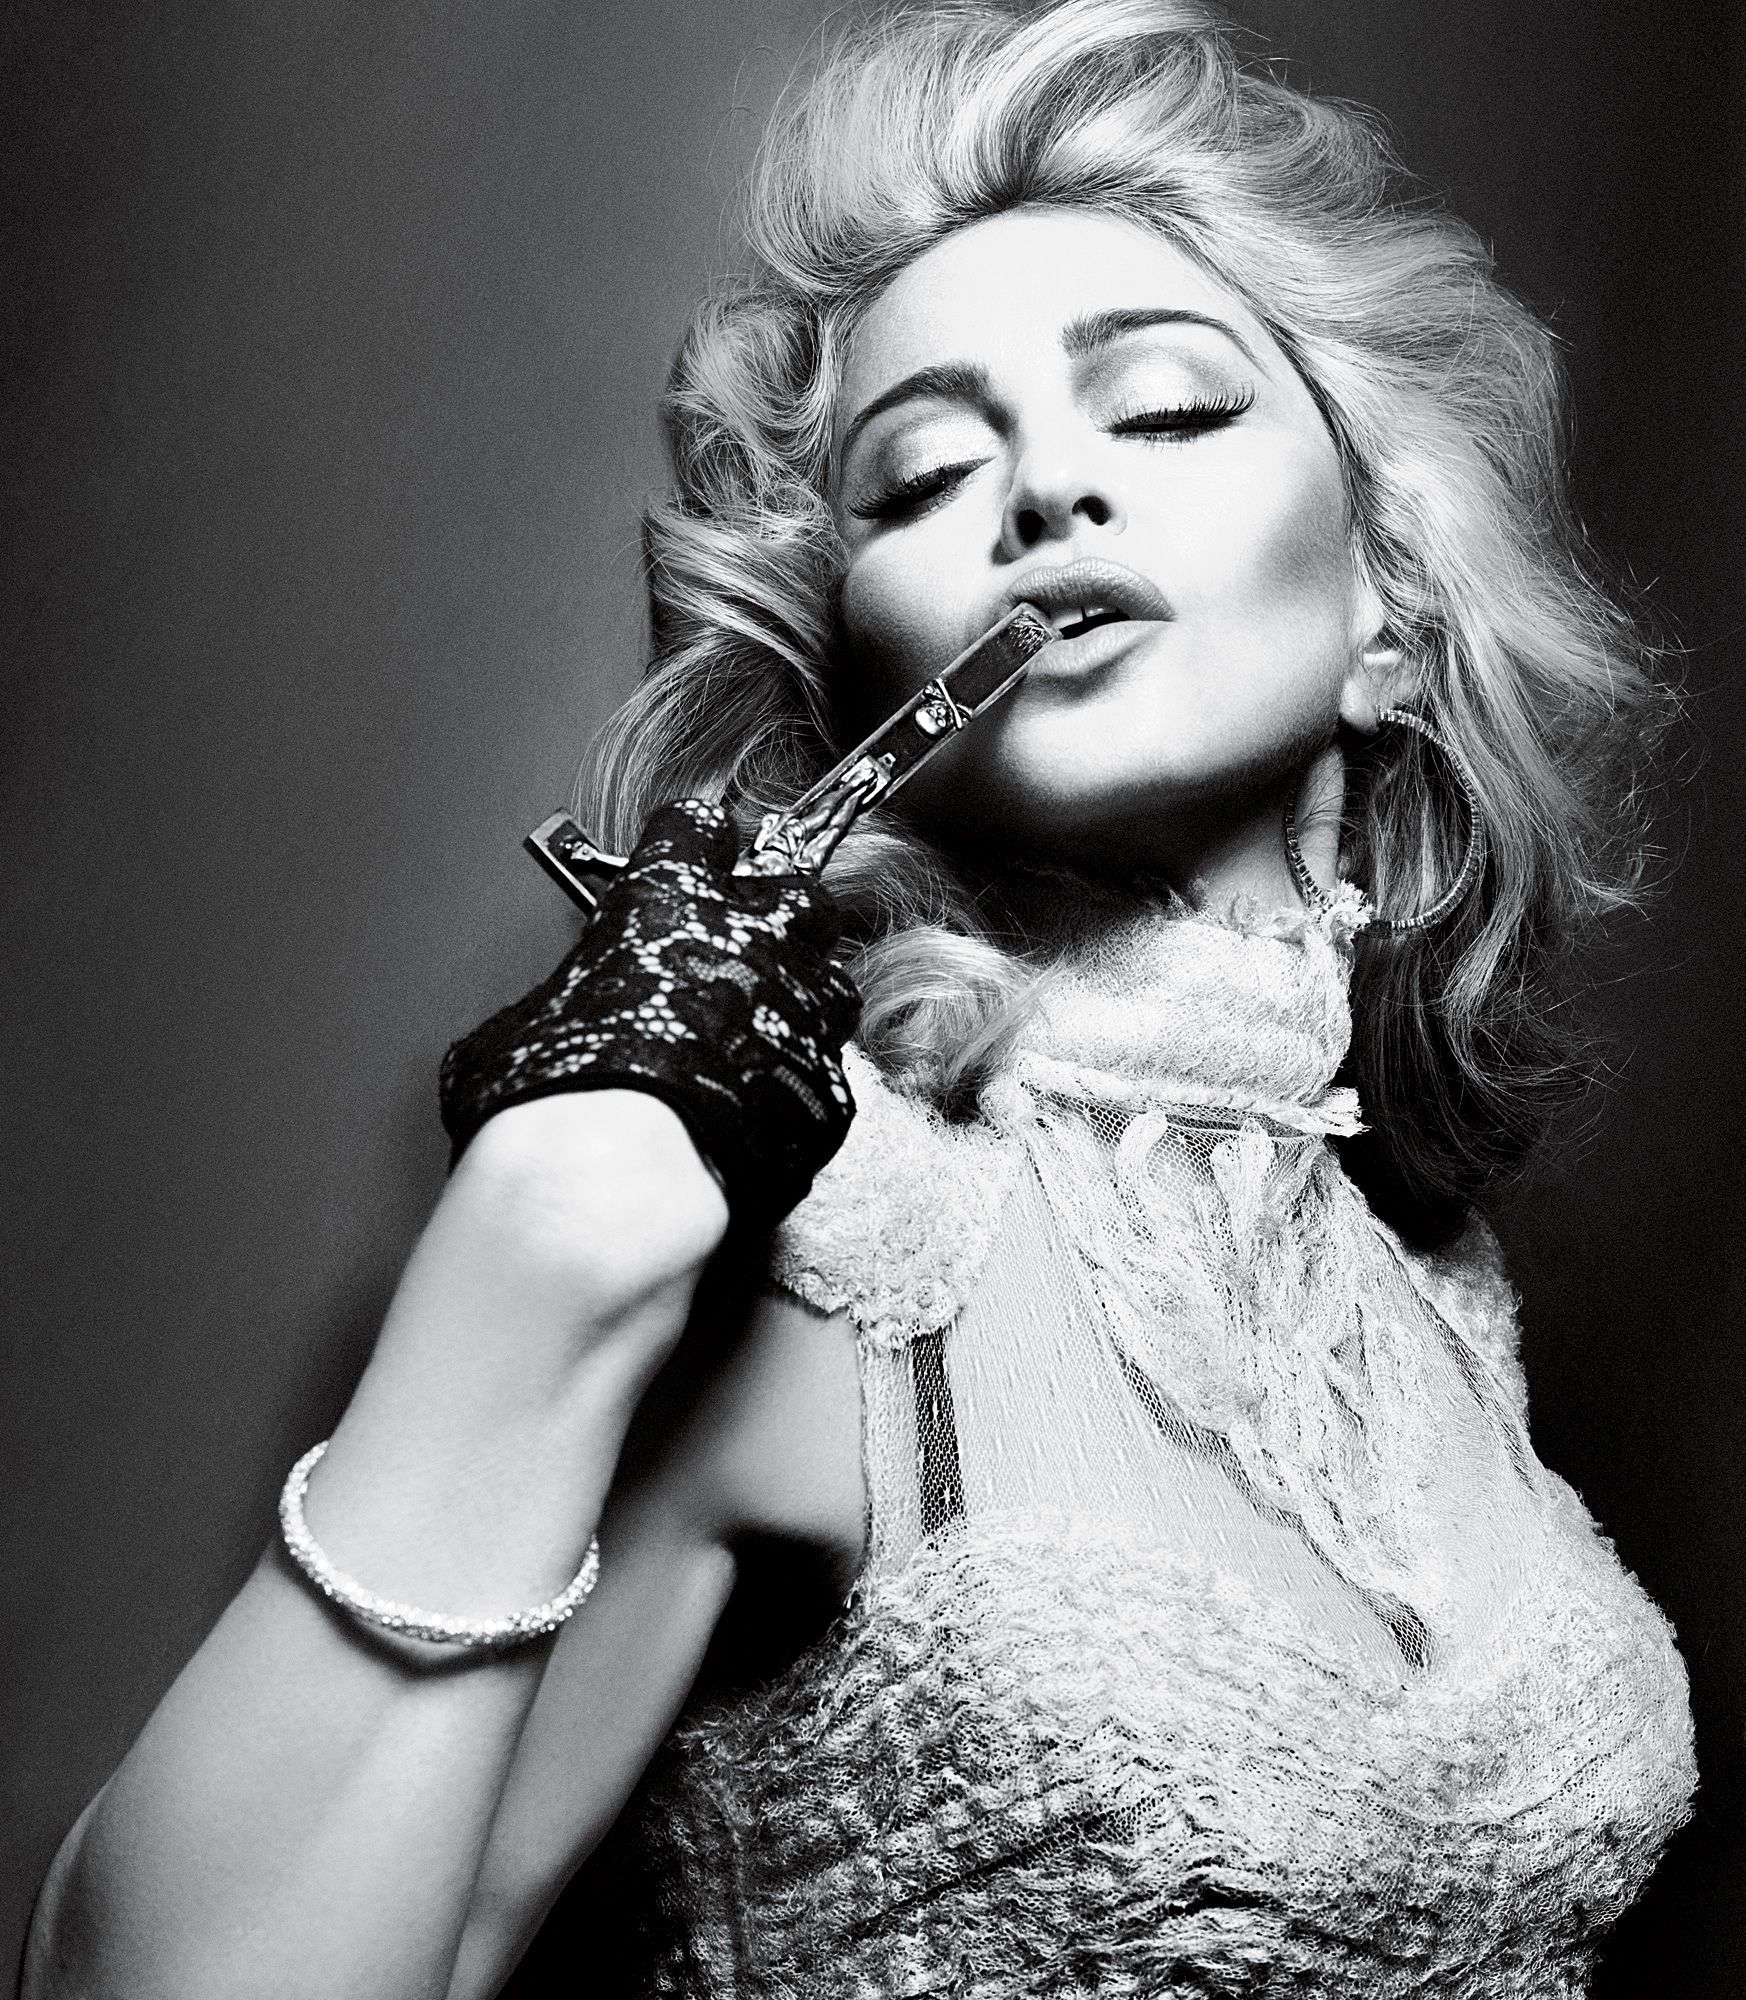 Madonna louise ciccone as known as madonna singer songwriter